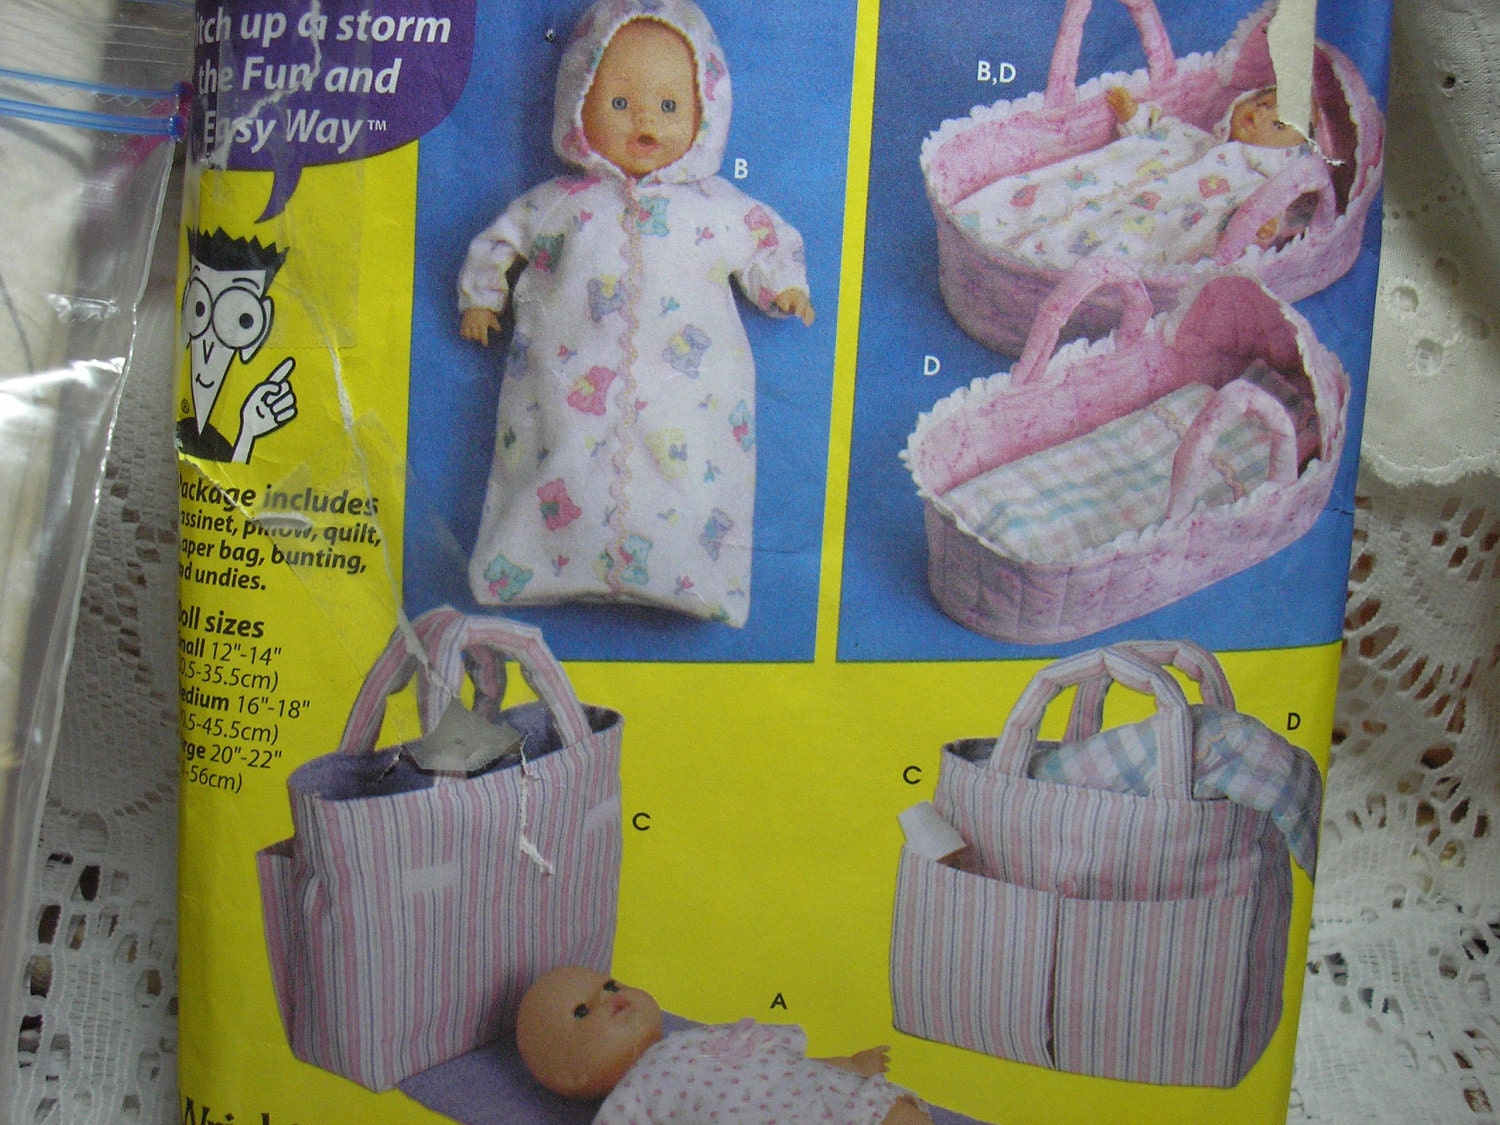 Simplicity 5554 Sewing Pattern Baby Doll Accessories